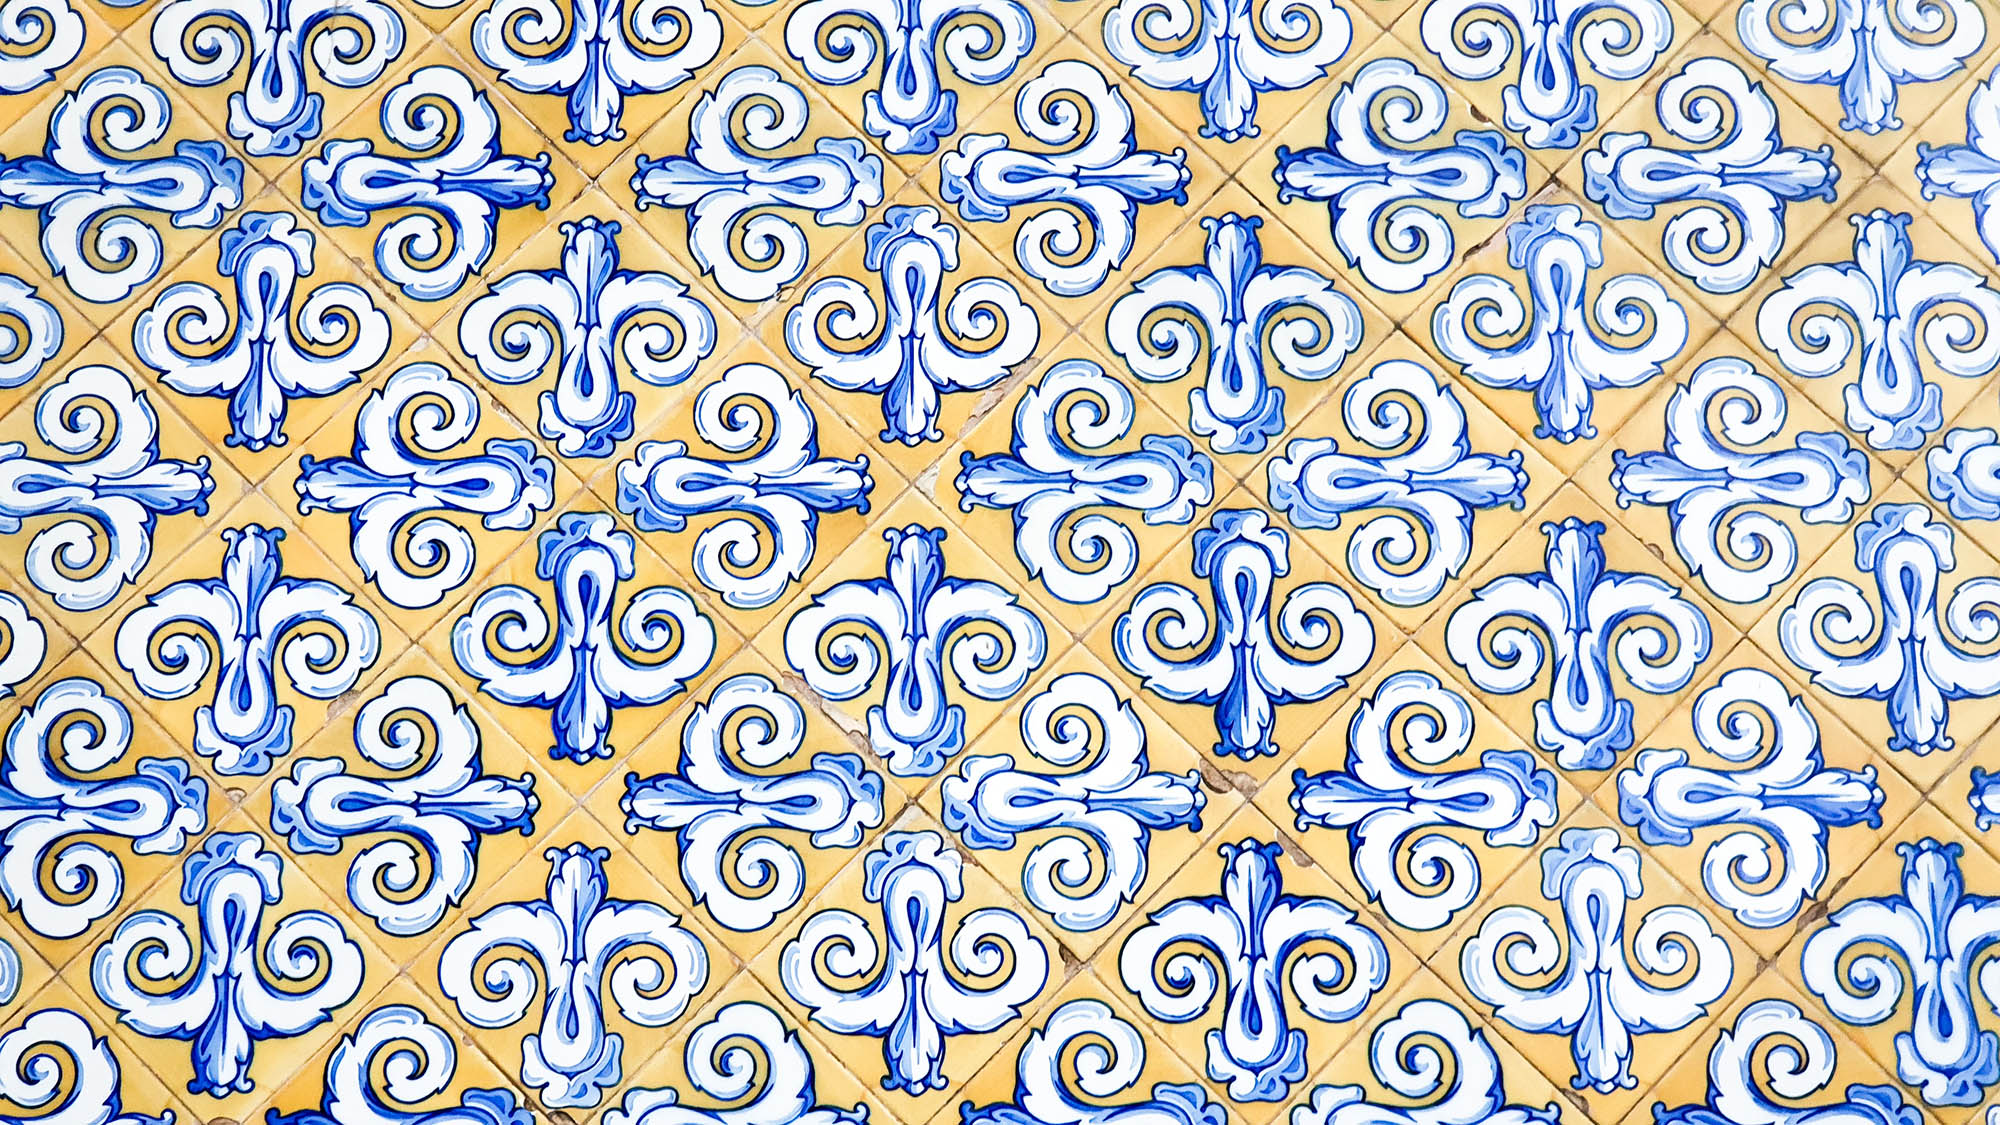 Blue yellow and white antique tiles